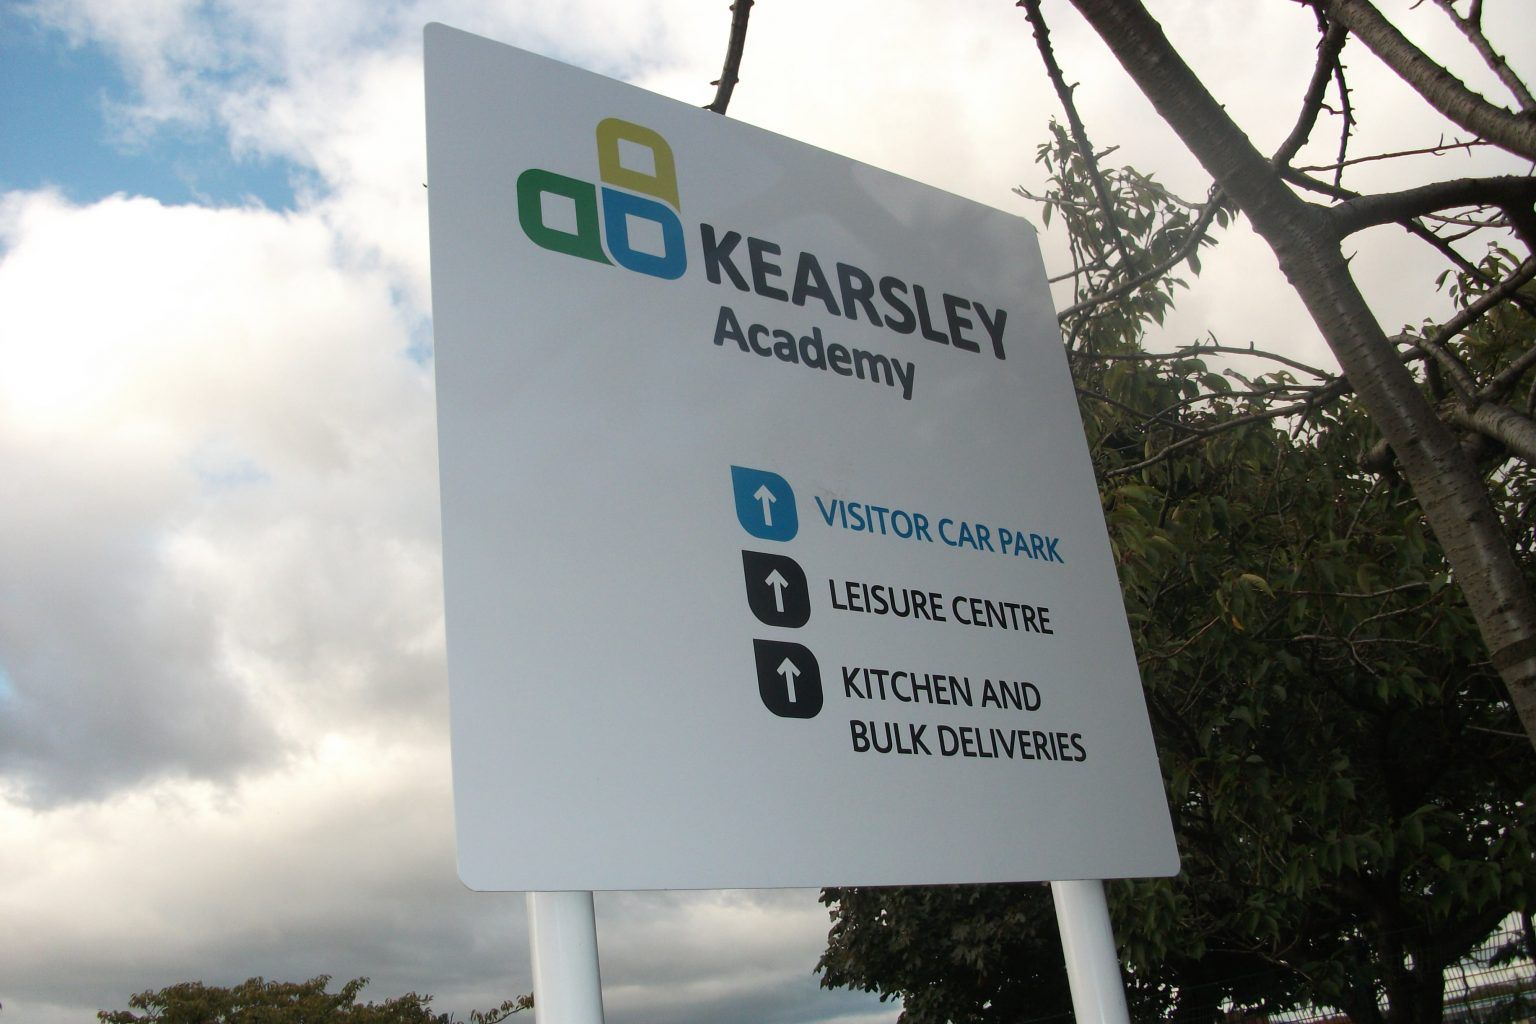 Keasley academy school post sign